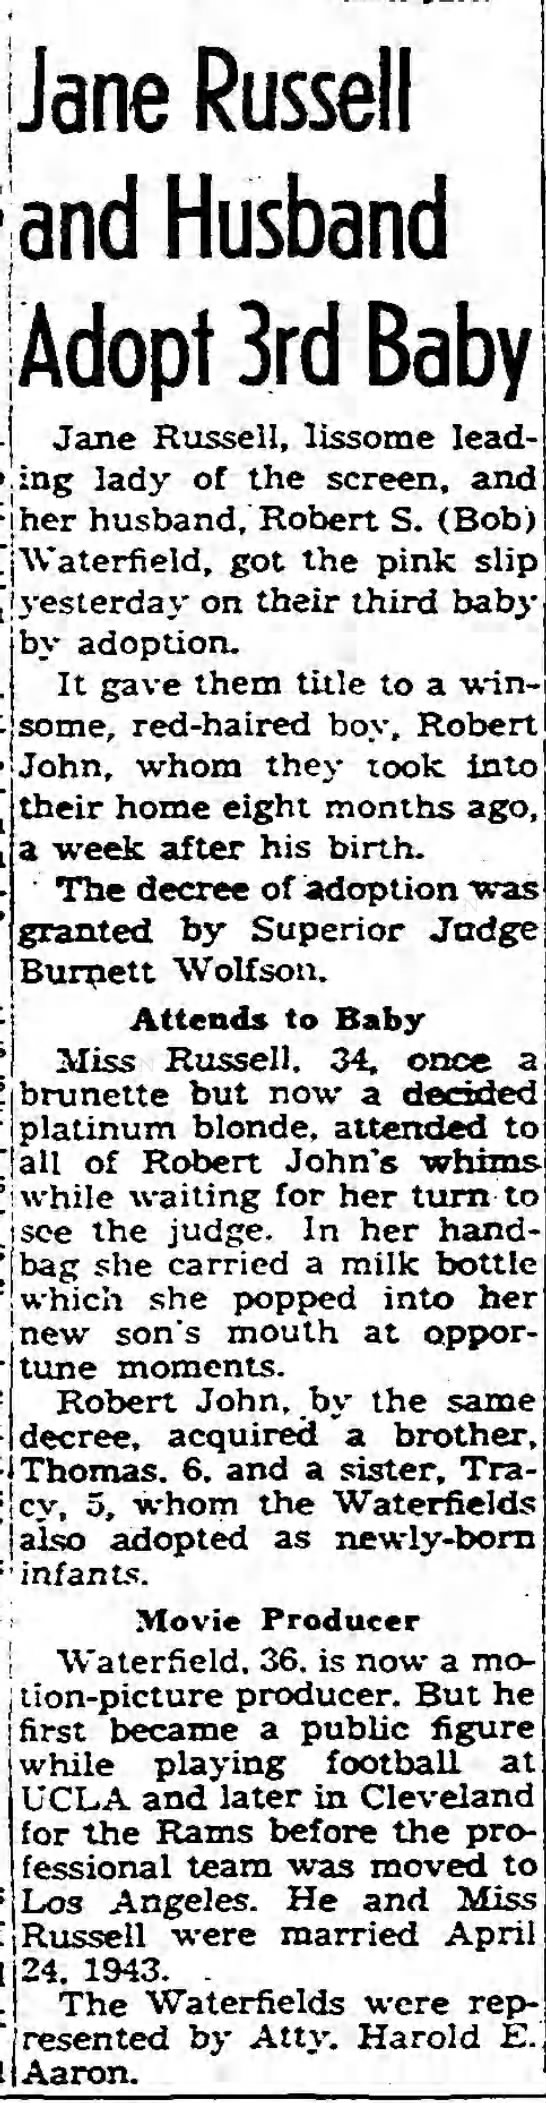 Jane Russell and Husband Adopt 3rd Baby -